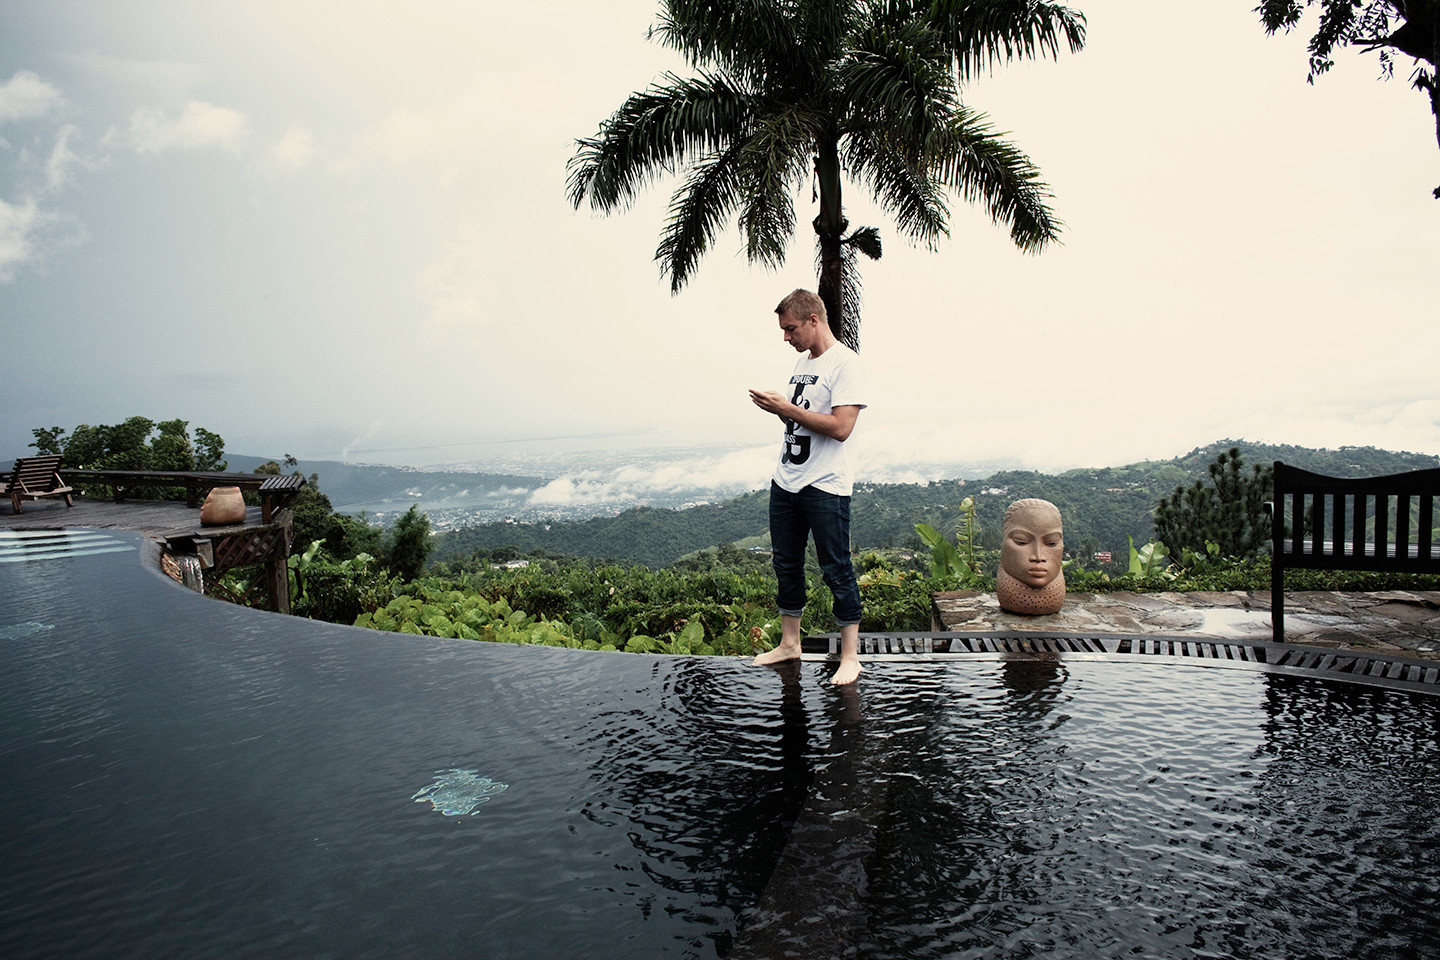 Diplo in Jamaica